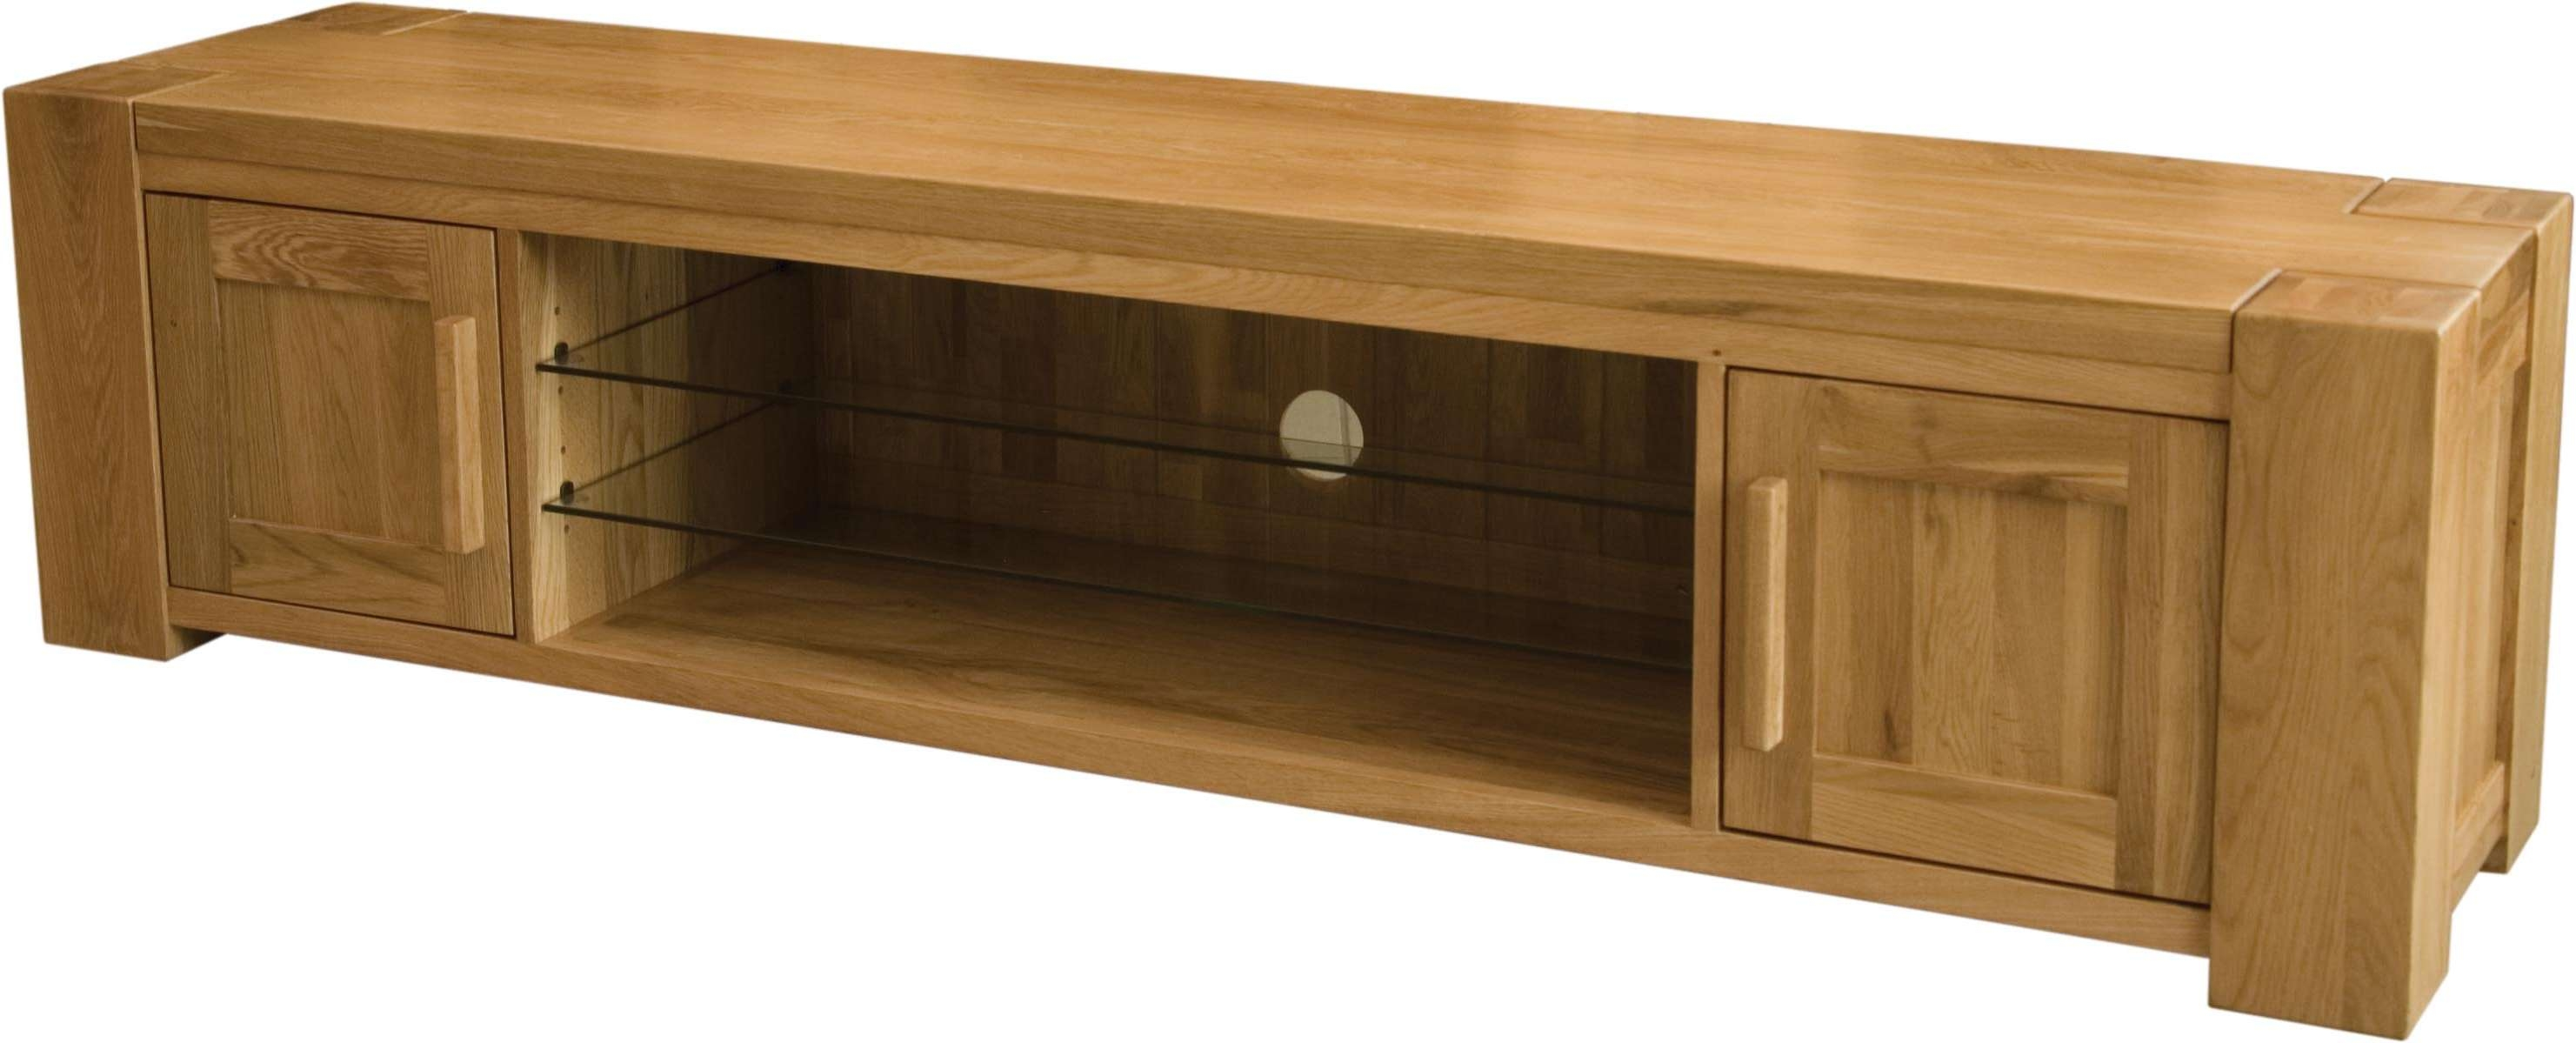 Trend Oak Large Plasma Tv Unit Buy Online With Large Oak Tv Cabinets (View 15 of 20)